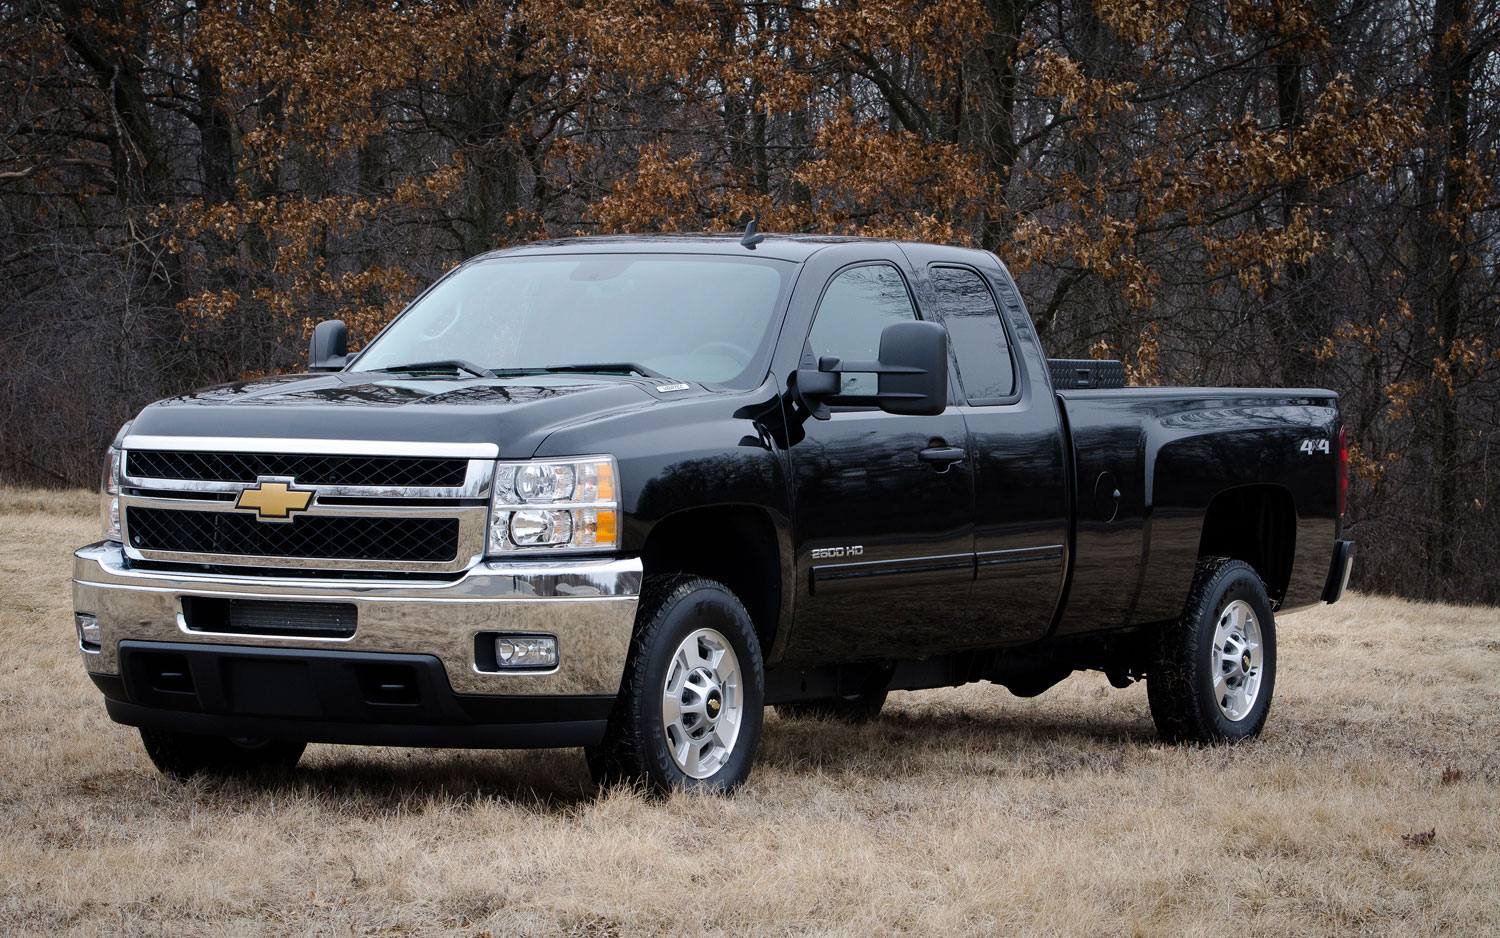 Truck chevy 2500hd trucks : 2013 Chevrolet Silverado/GMC Sierra 2500HD | Commercial Carrier ...